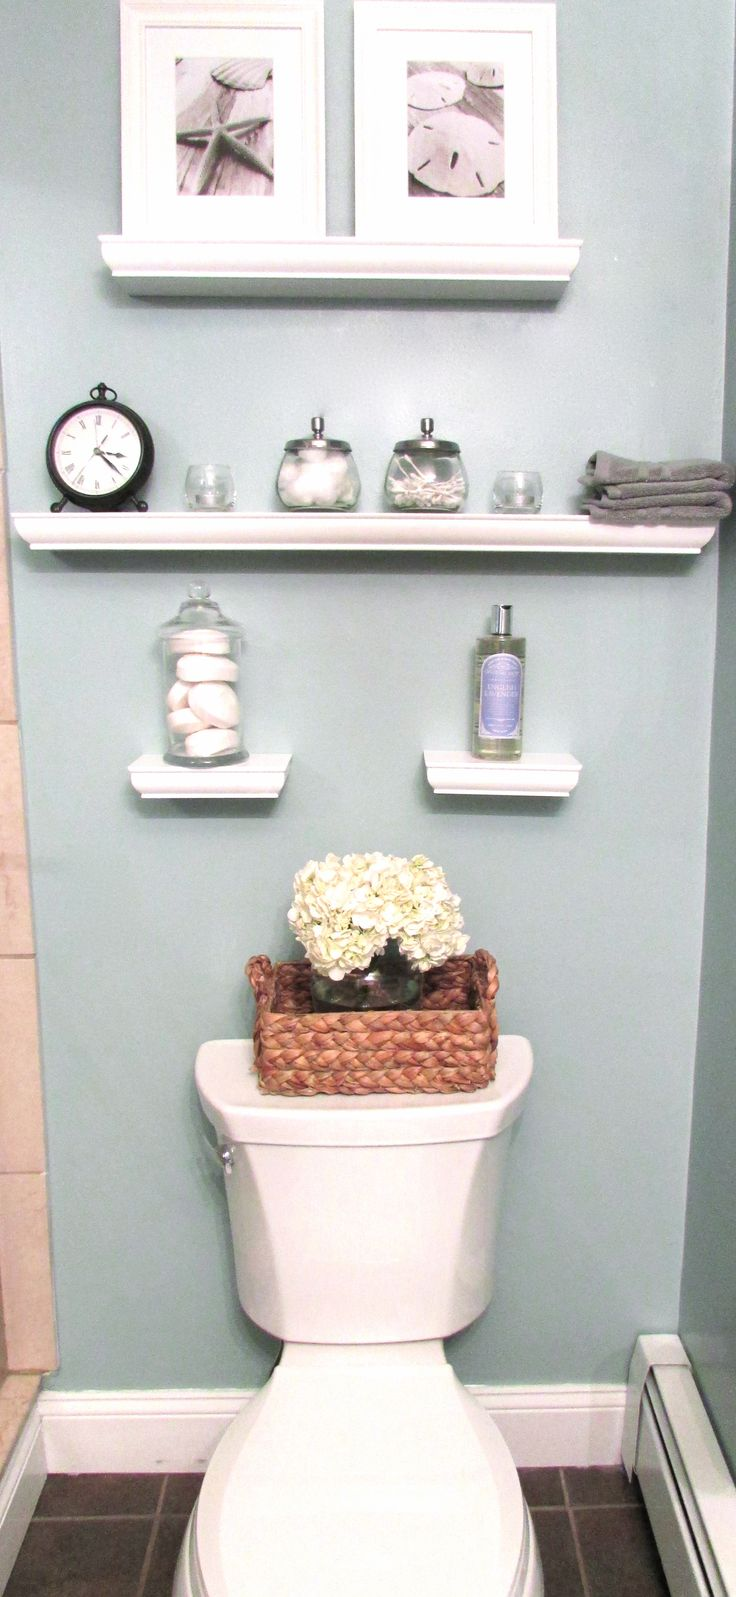 Small Bathroom Inspiration & Reveal - Eventful Life. Love this color too!